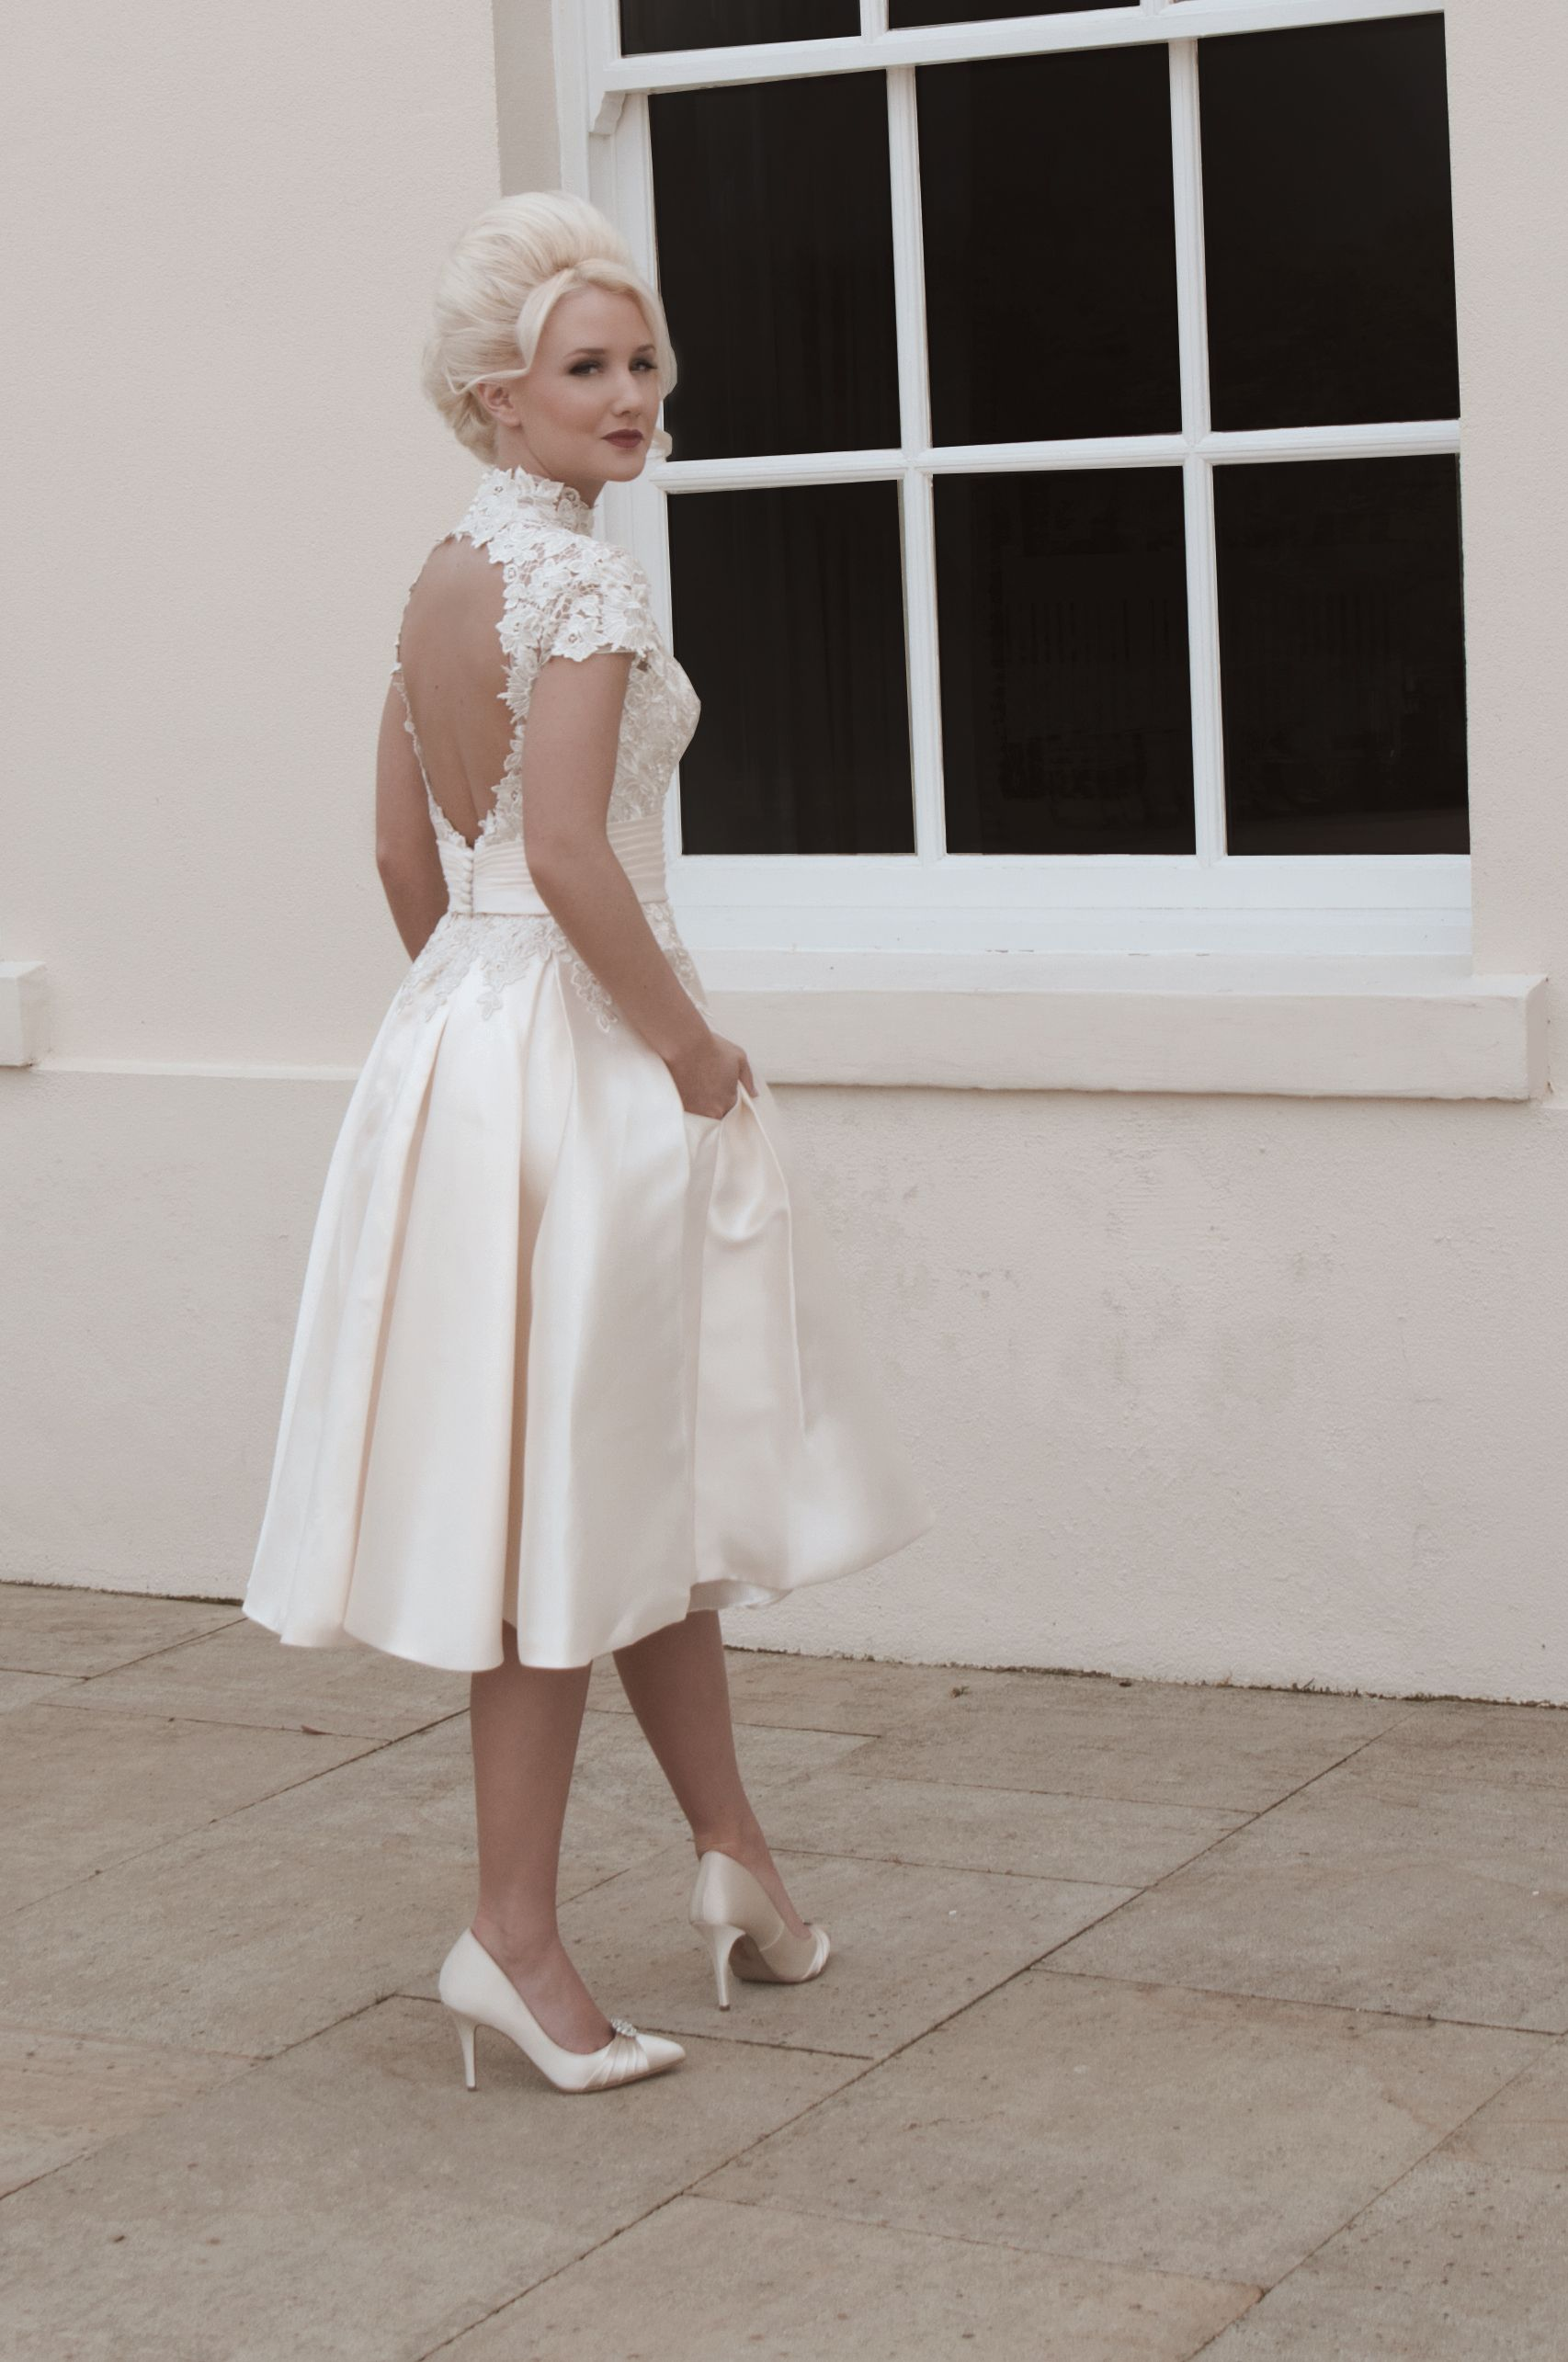 Fabulous Discount New Vintage Lace Short Wedding Dresses A Line Sweetheart Cap Sleeve Backless Lace Up Knee Length